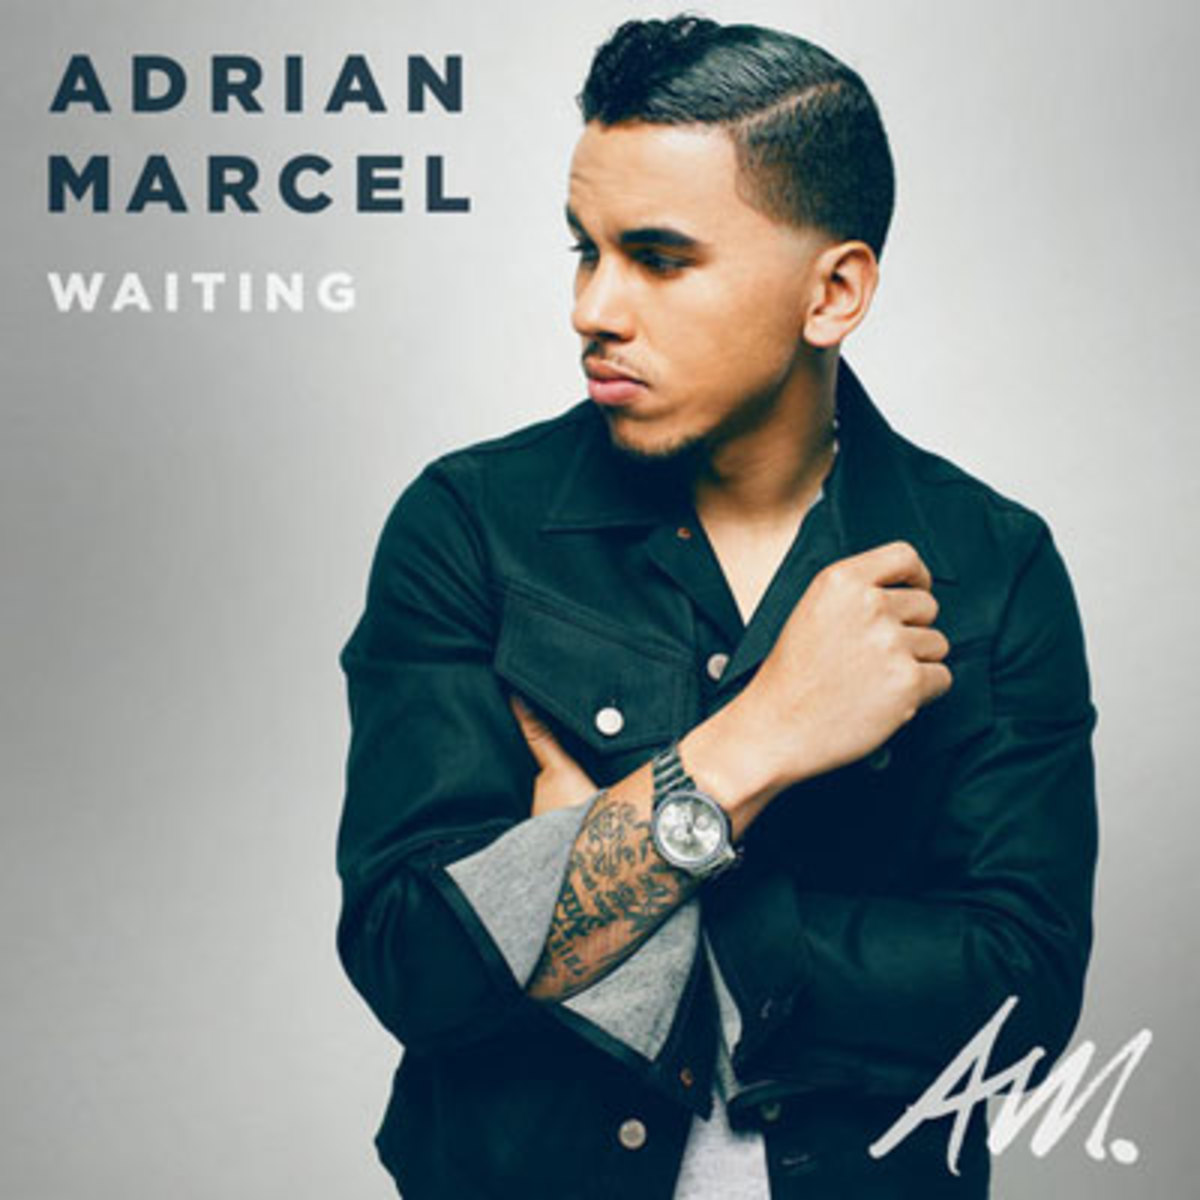 adrianmarcel-waiting.jpg